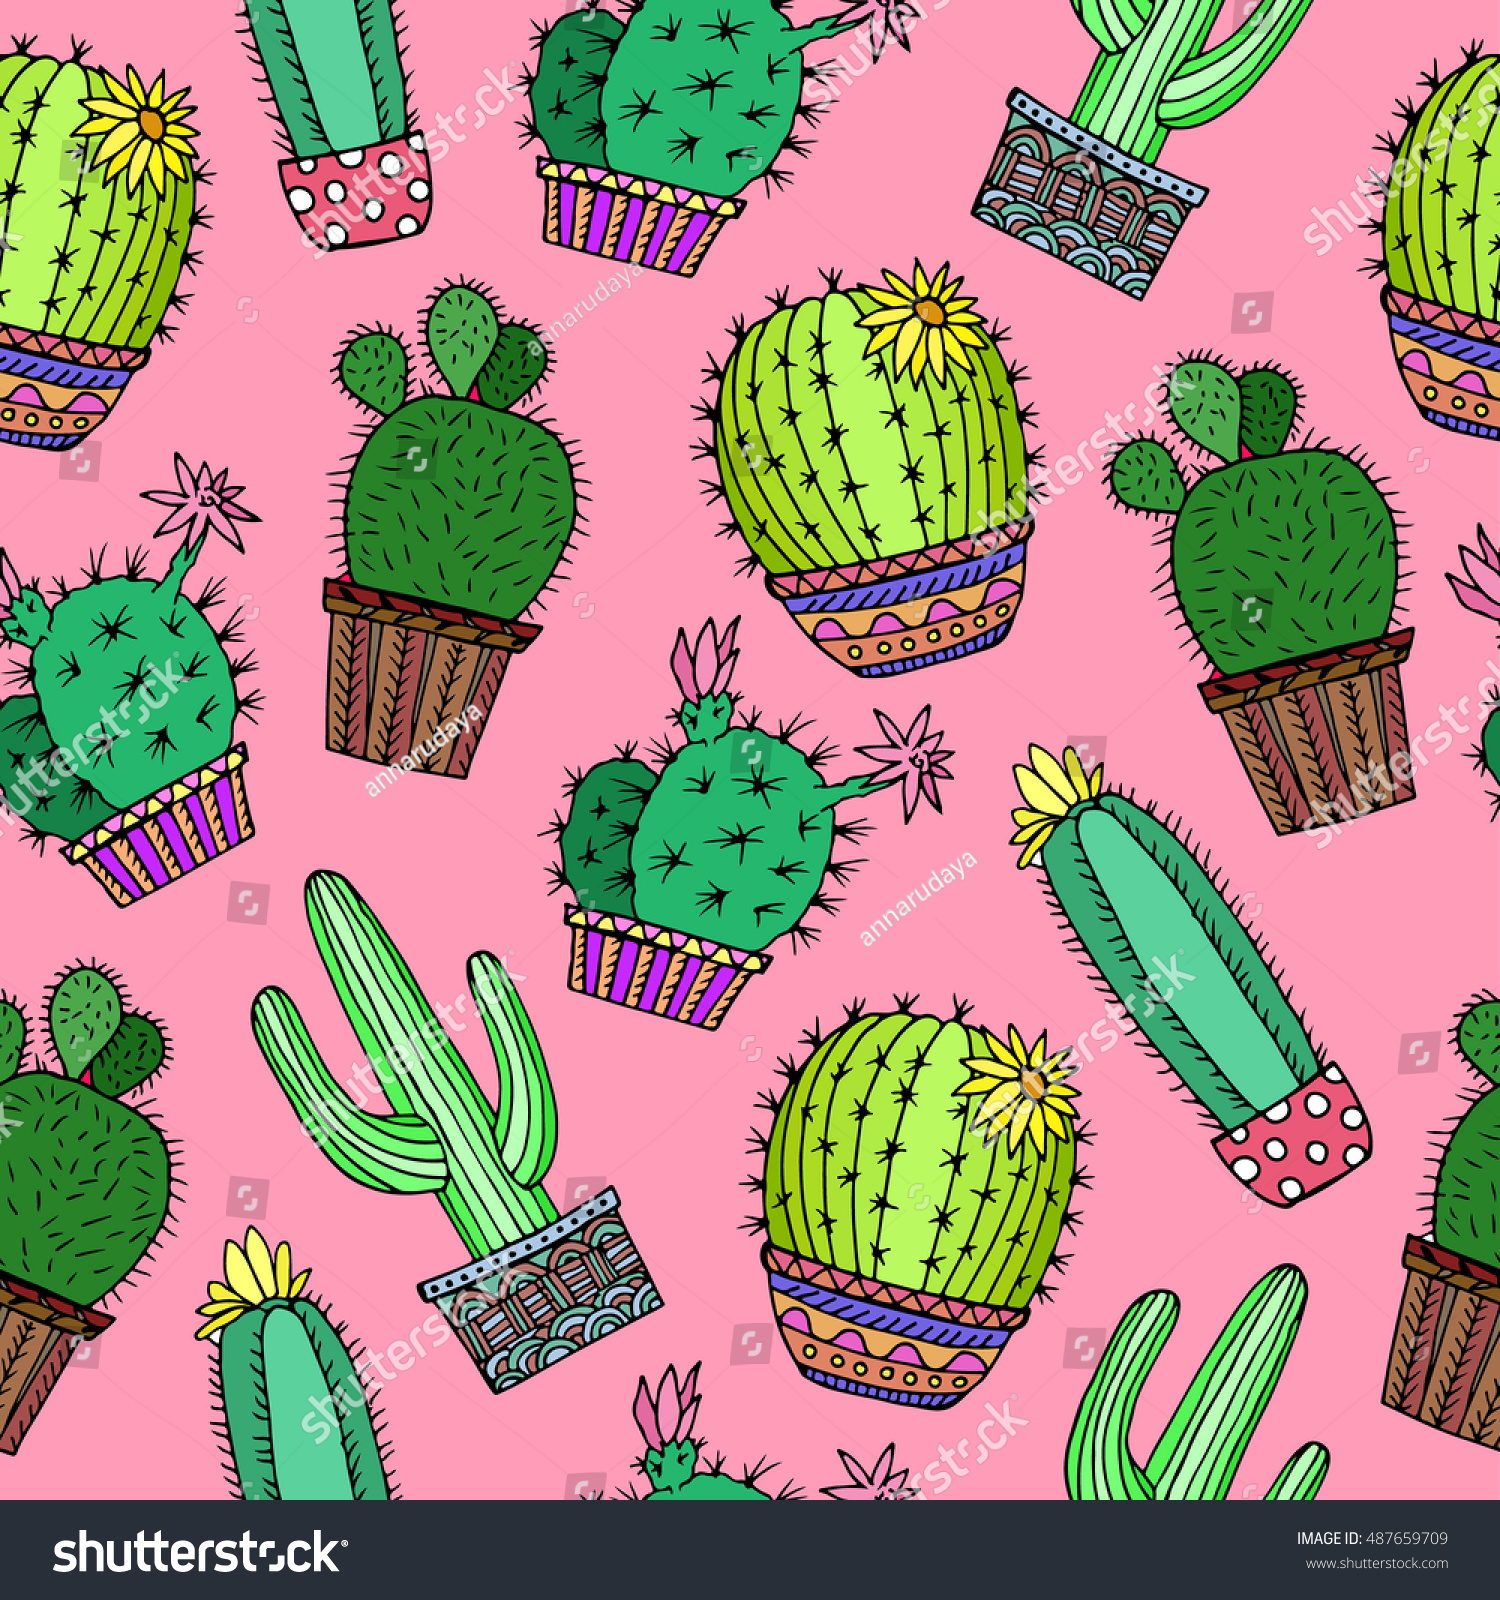 Popular Wallpaper Green Birthday - stock-vector-cactus-plant-background-seamless-pattern-green-pink-flower-doodle-floral-vector-illustration-487659709  HD_70210 .jpg